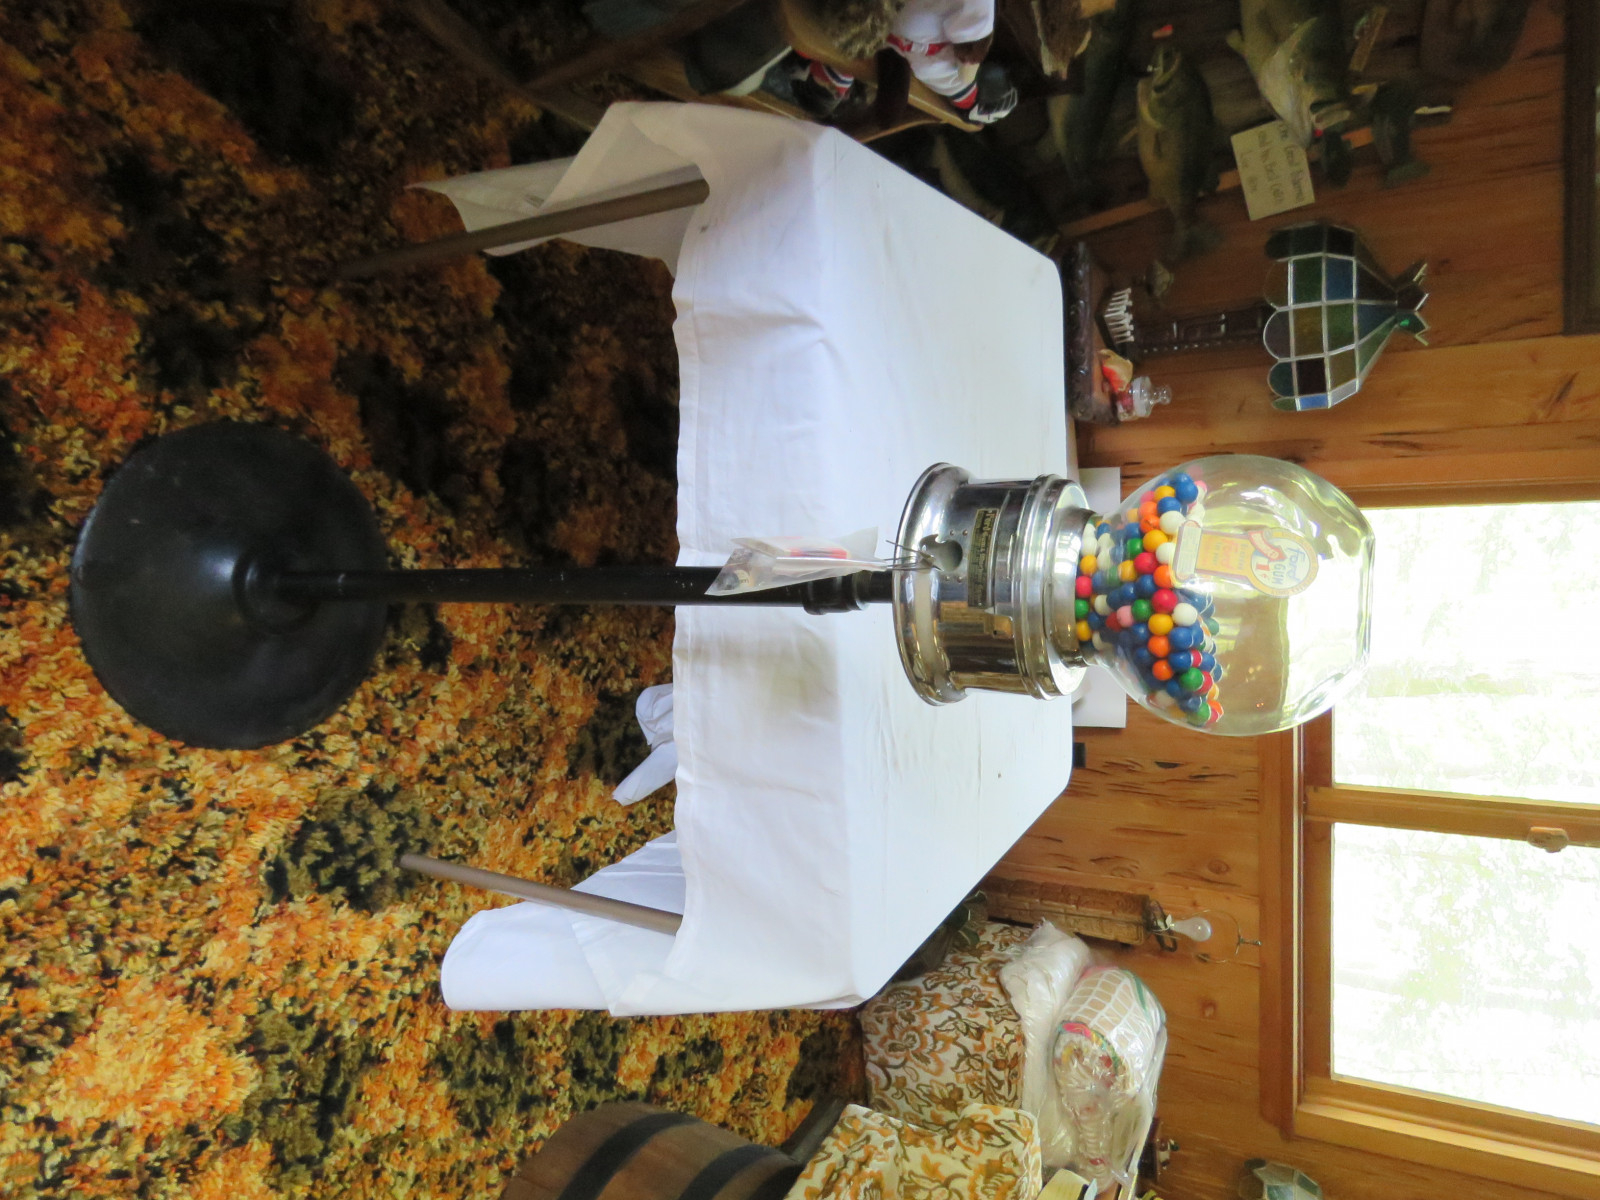 Rare Factory Ford Gumball Machine with Ford papers and Gumballs-Glass - Image 1